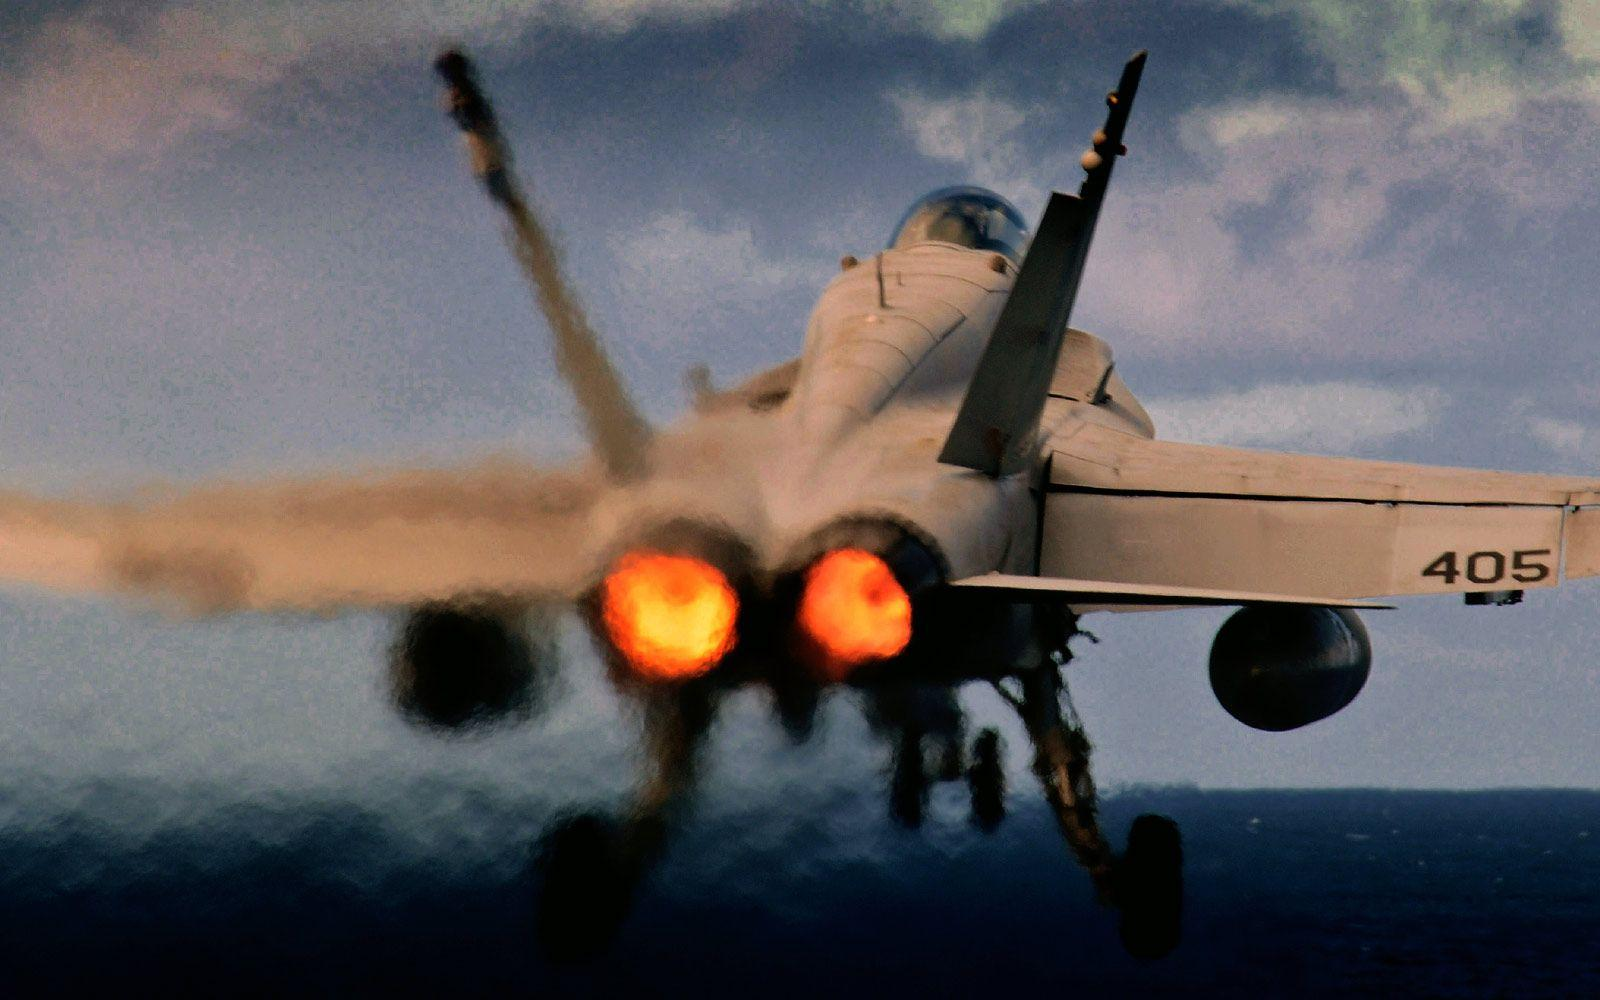 Fighter Jet Wallpapers Wallpaper | HD Wallpapers | Pinterest ...